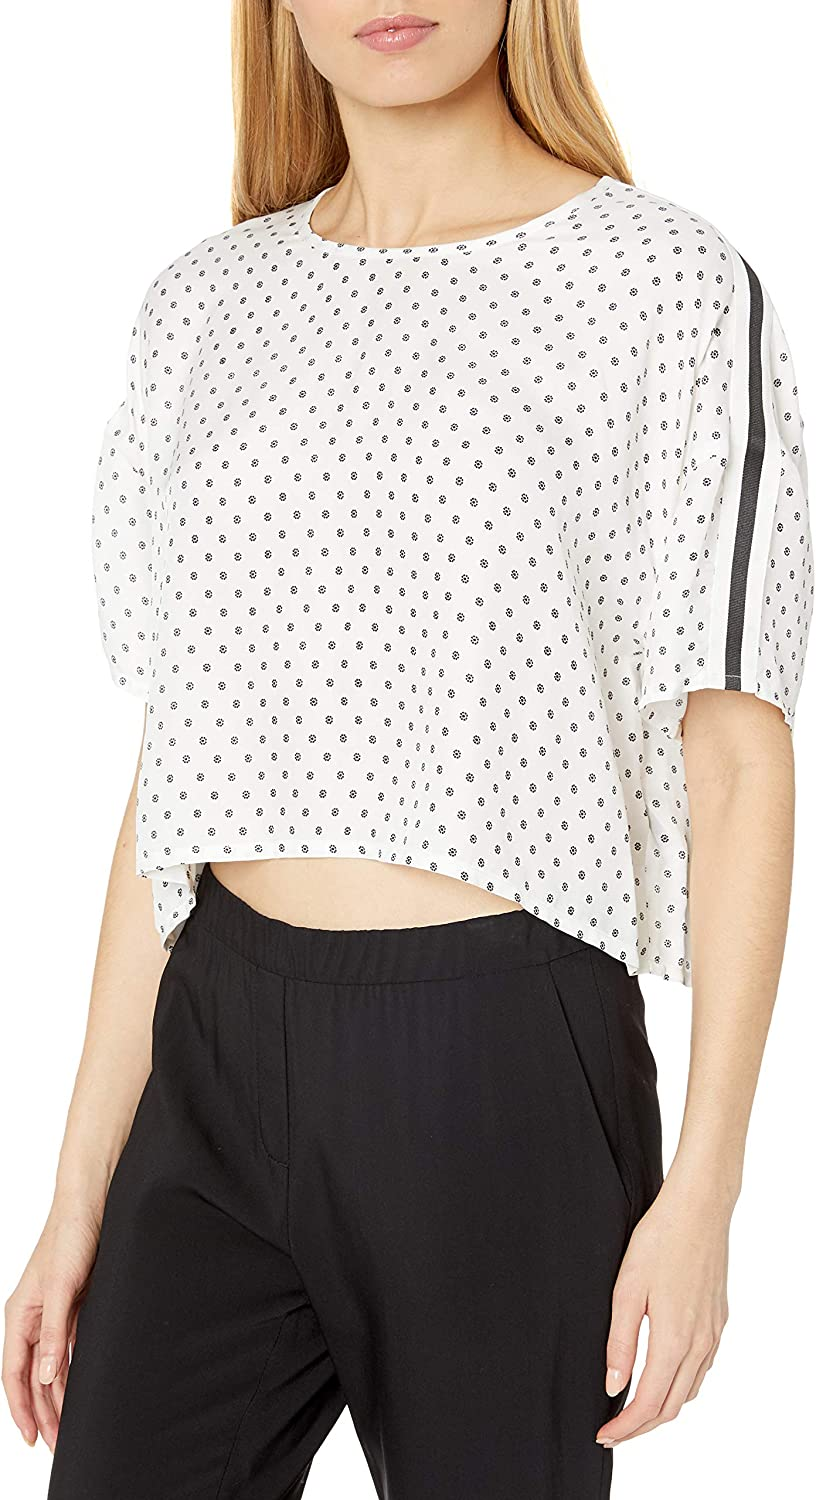 The Kooples Women's Casual Cropped Outlet SALE in Genuine a Flo Graphic Top